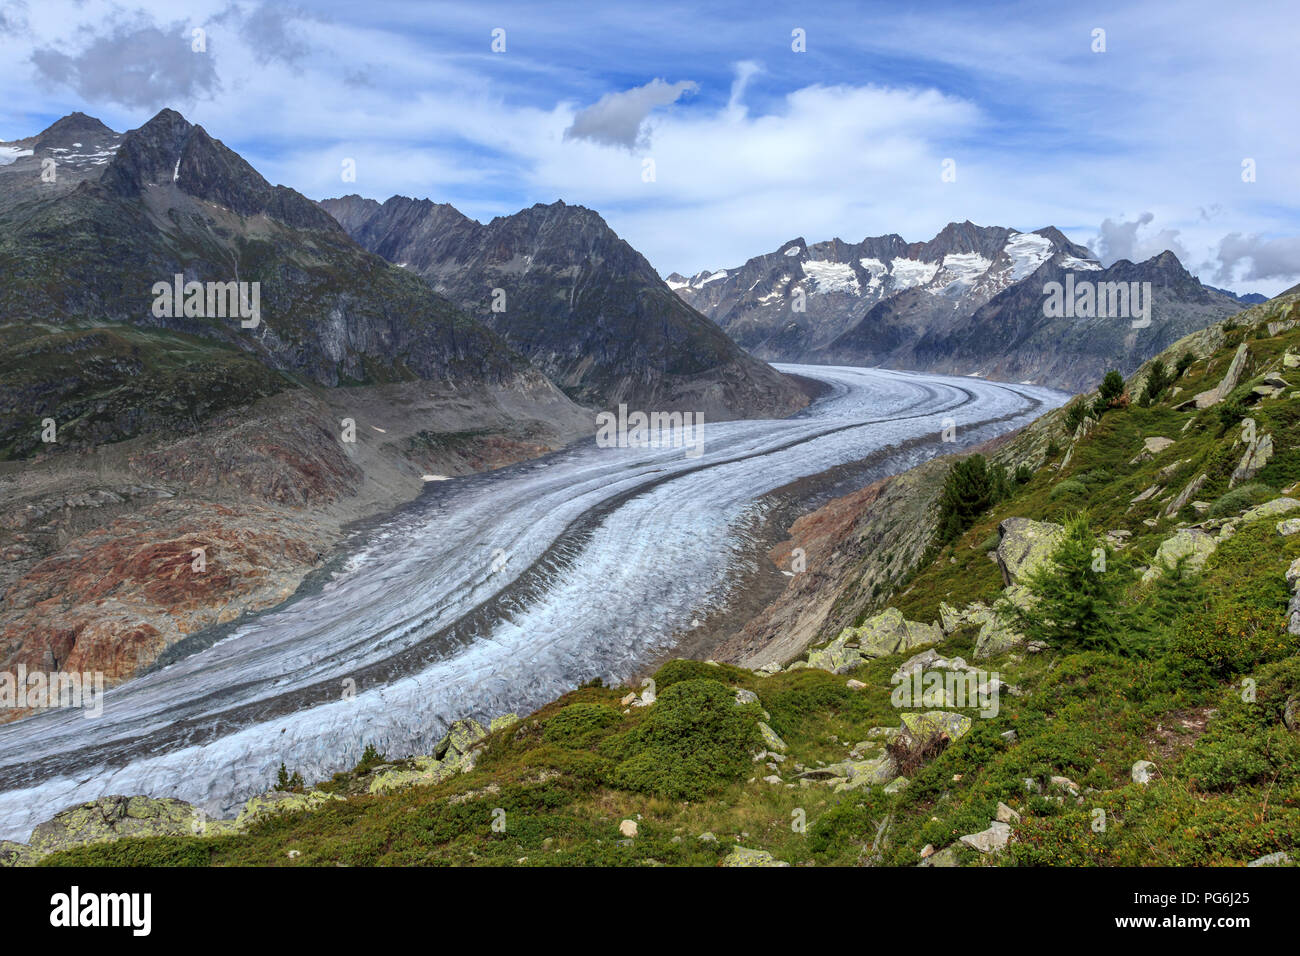 Aletsch glacier in Switzerland Stock Photo